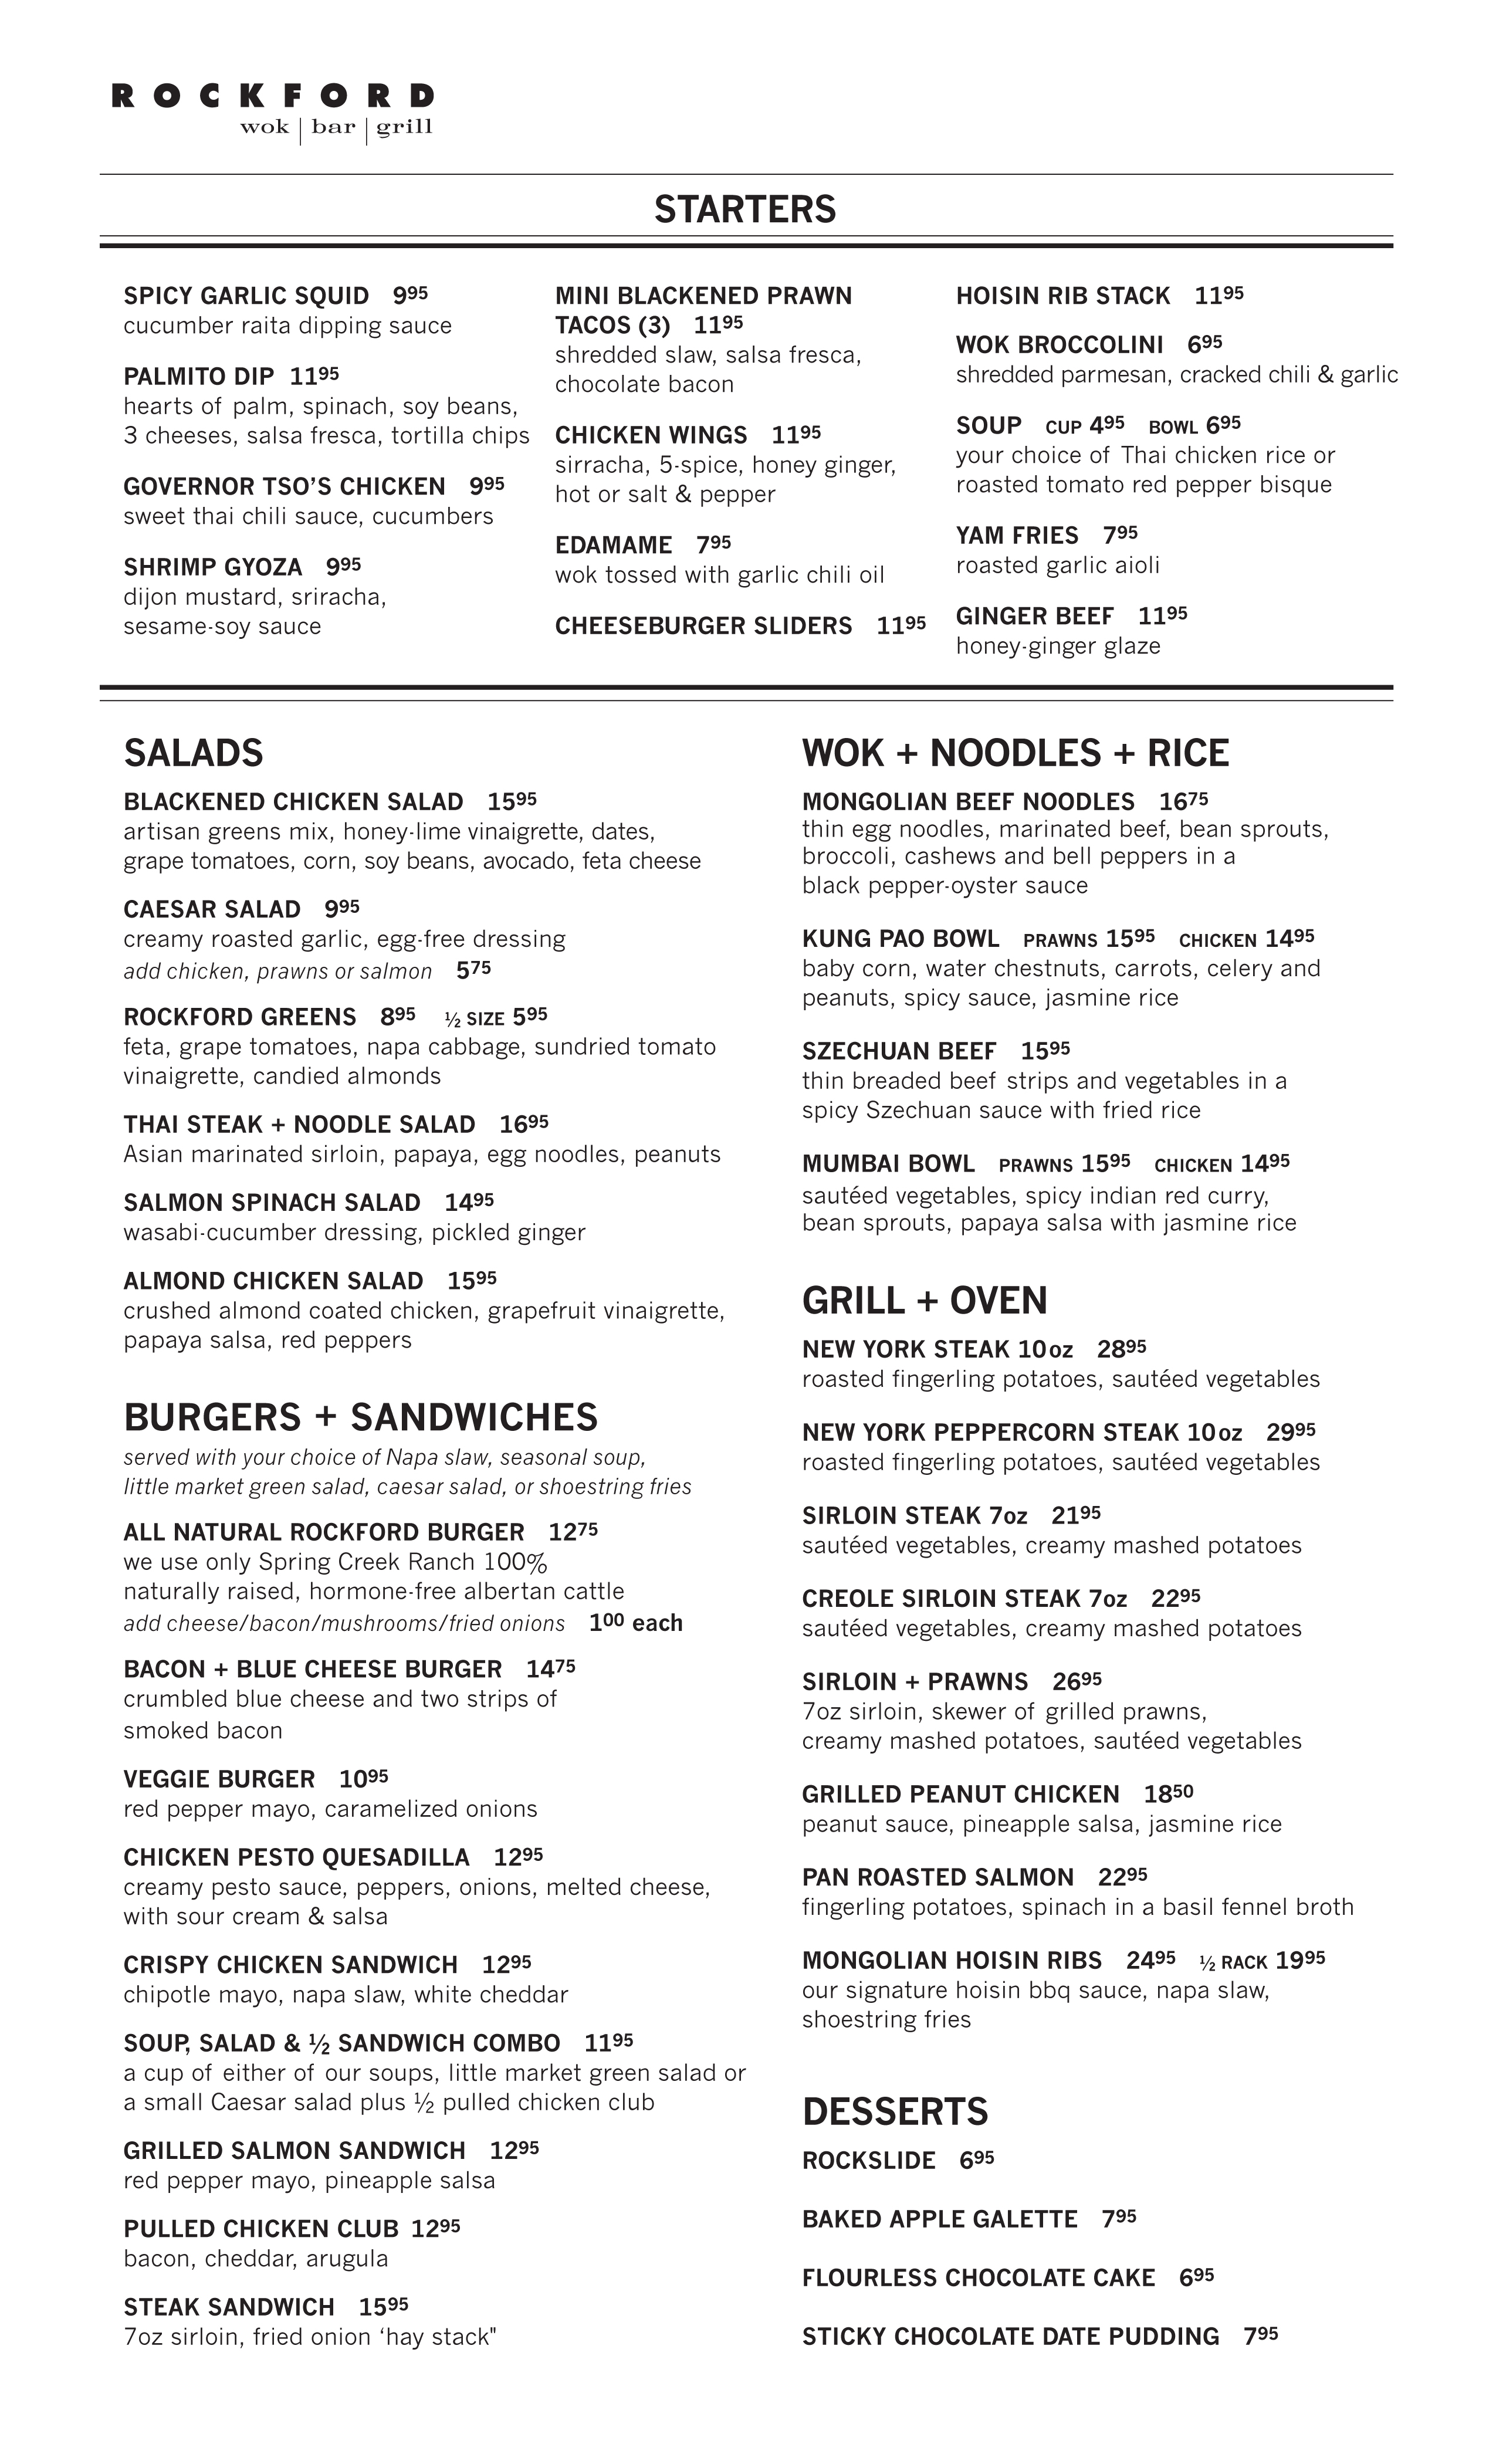 Rockford Grill Restaurant Menu Graphic Design Page 2